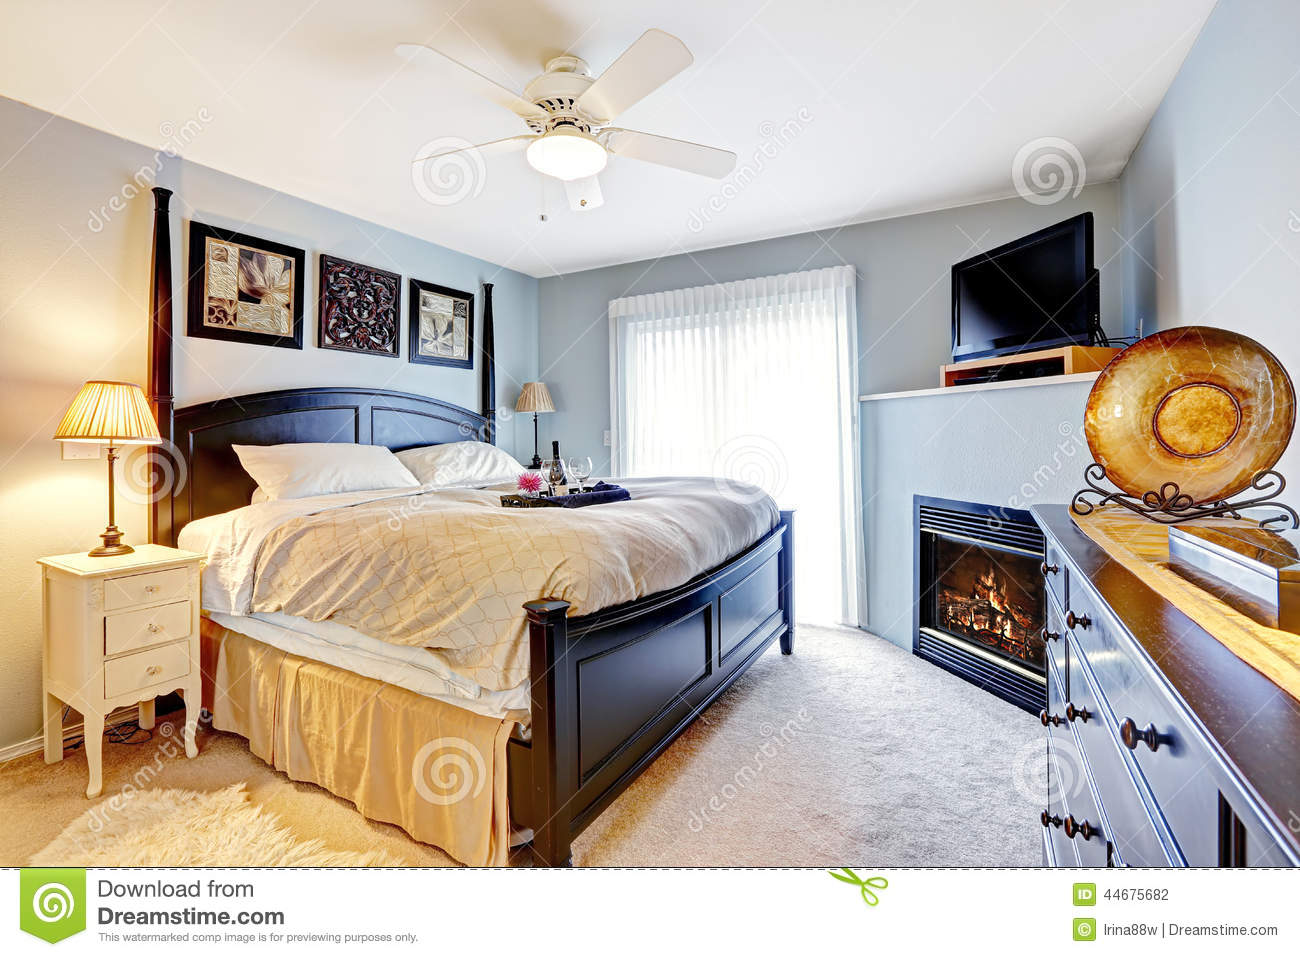 master bedroom with fireplace and tv stock photo image of home interior 44675682. Black Bedroom Furniture Sets. Home Design Ideas